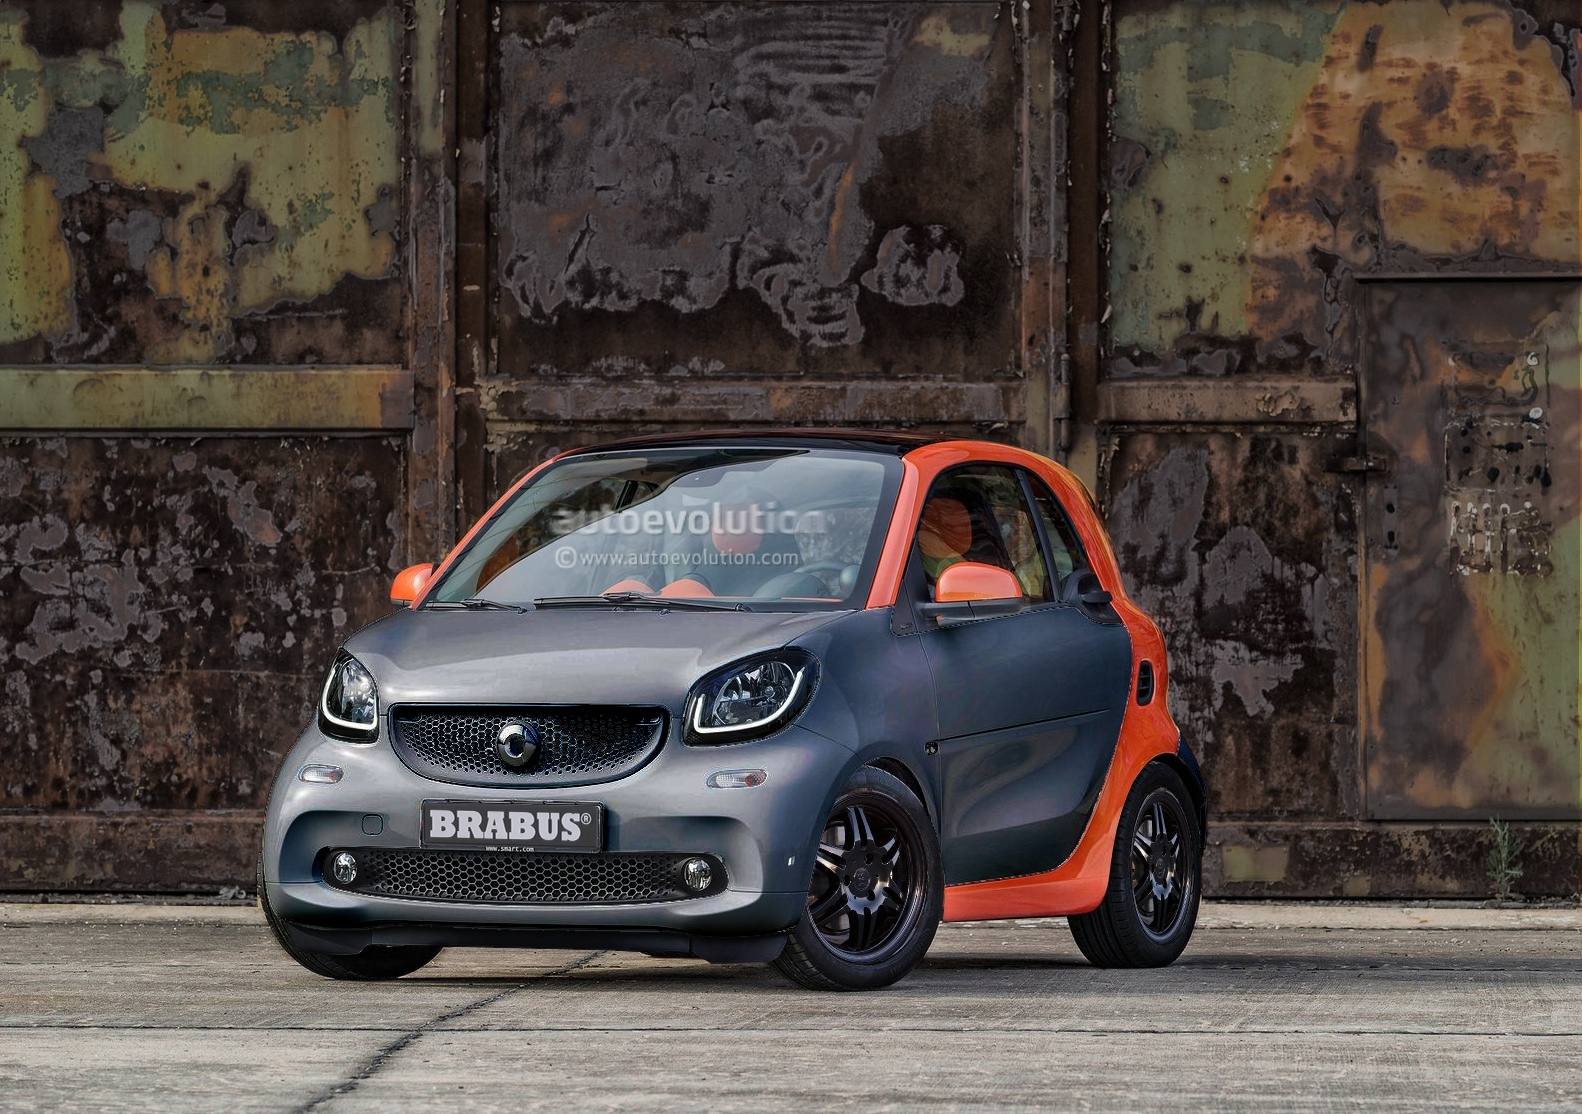 2015 smart fortwo by Brabus: the Details - autoevolution